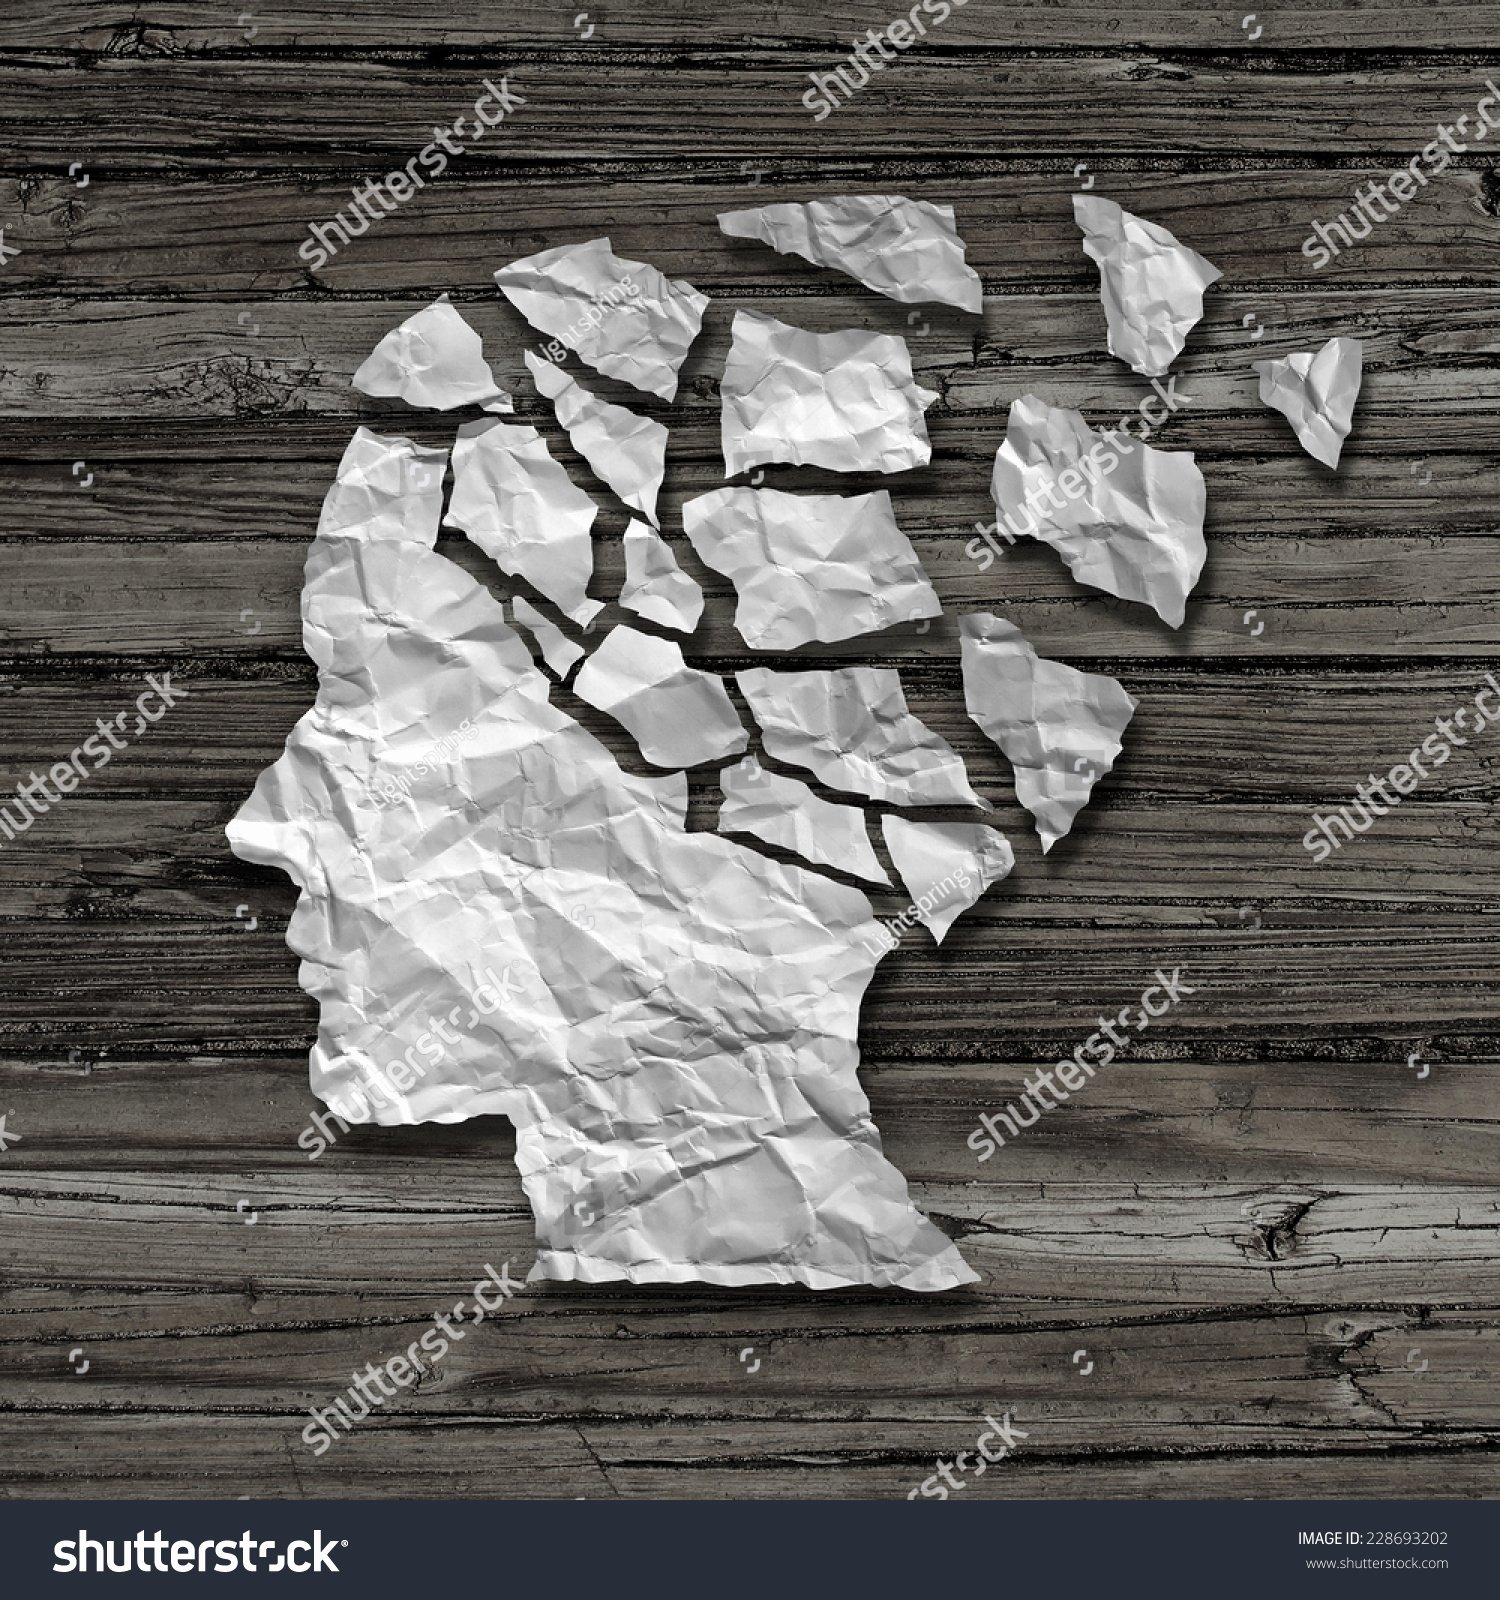 Medical Face Sheet Luxury Alzheimer Patient Medical Mental Health Care Stock